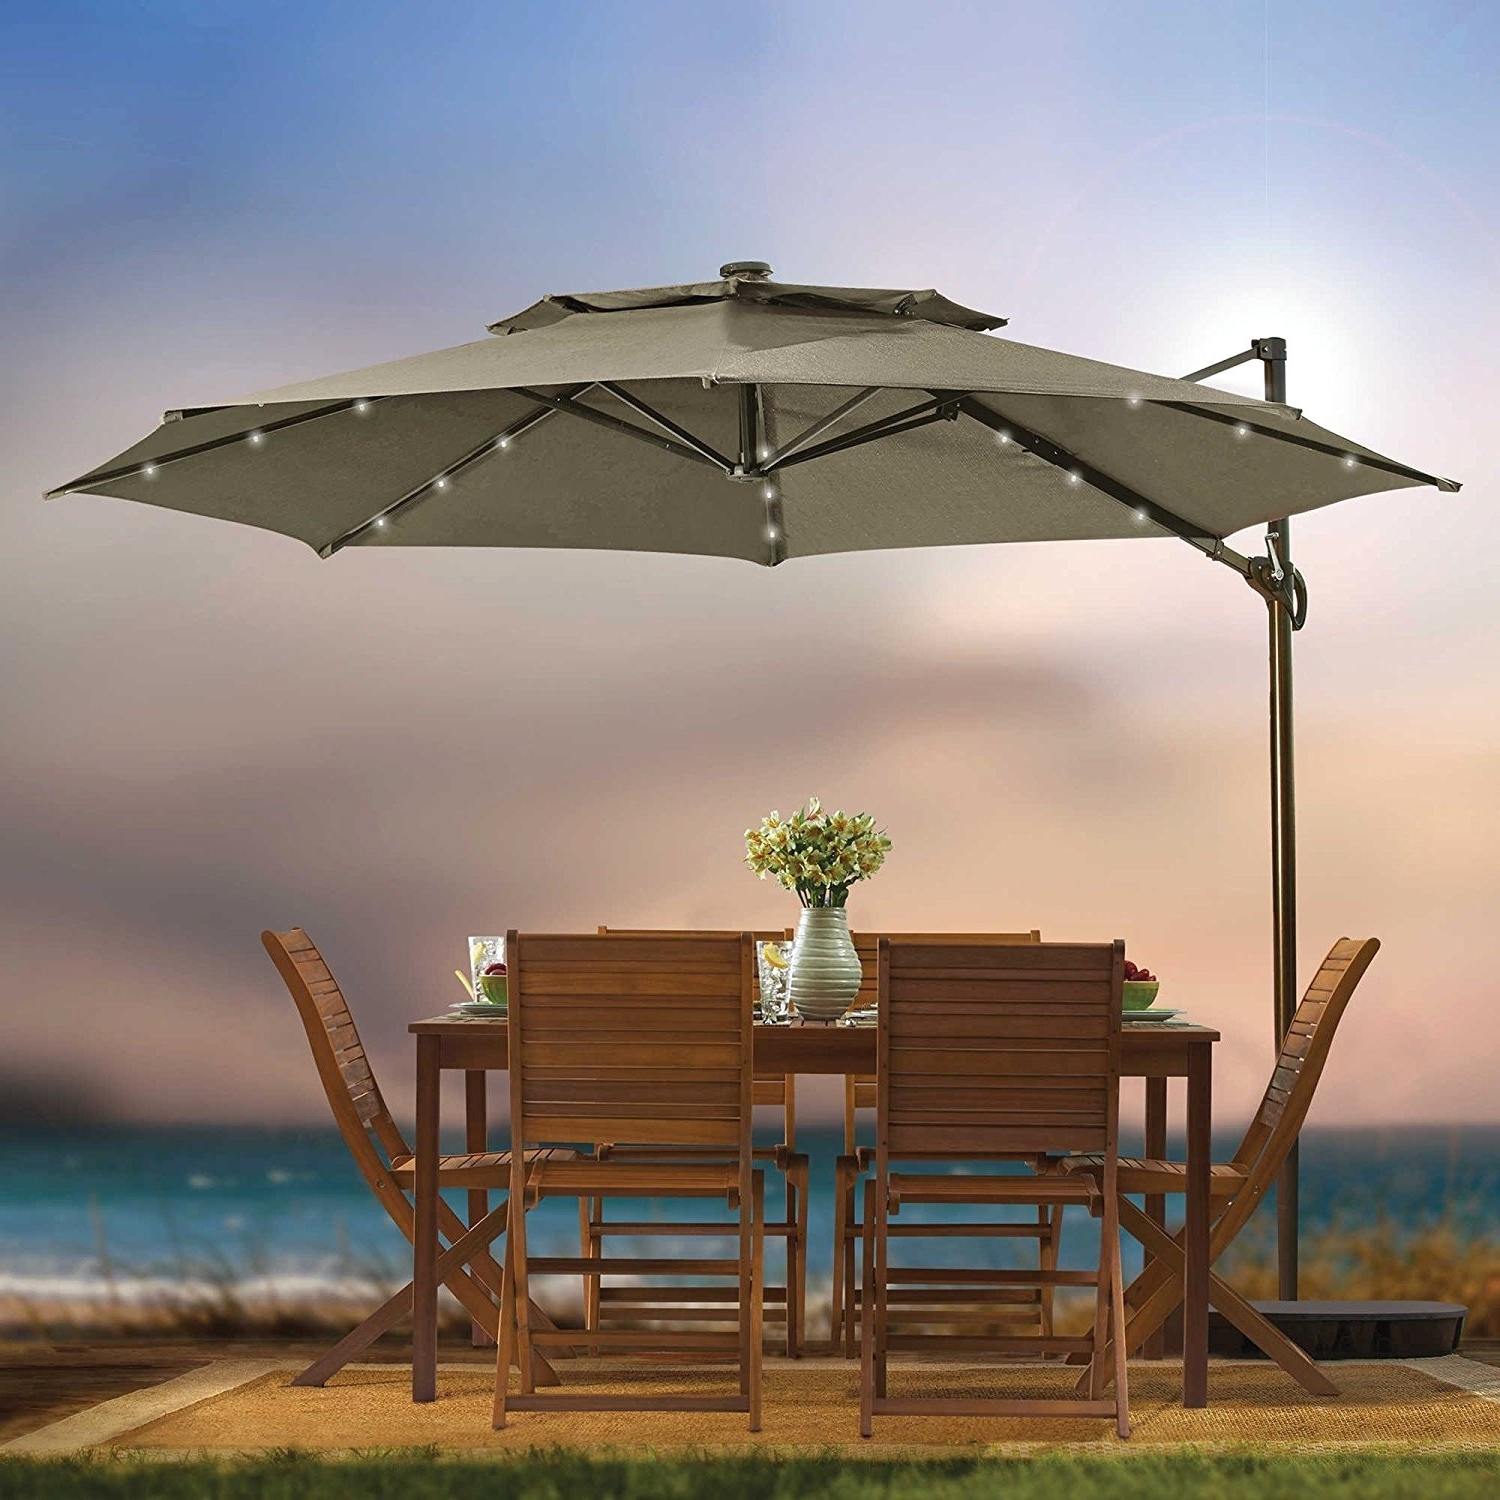 4 6 Foot Patio Umbrellas Awesome Amazon Sundale Outdoor 9 Feet Steel Pertaining To Most Popular Unusual Patio Umbrellas (View 10 of 20)